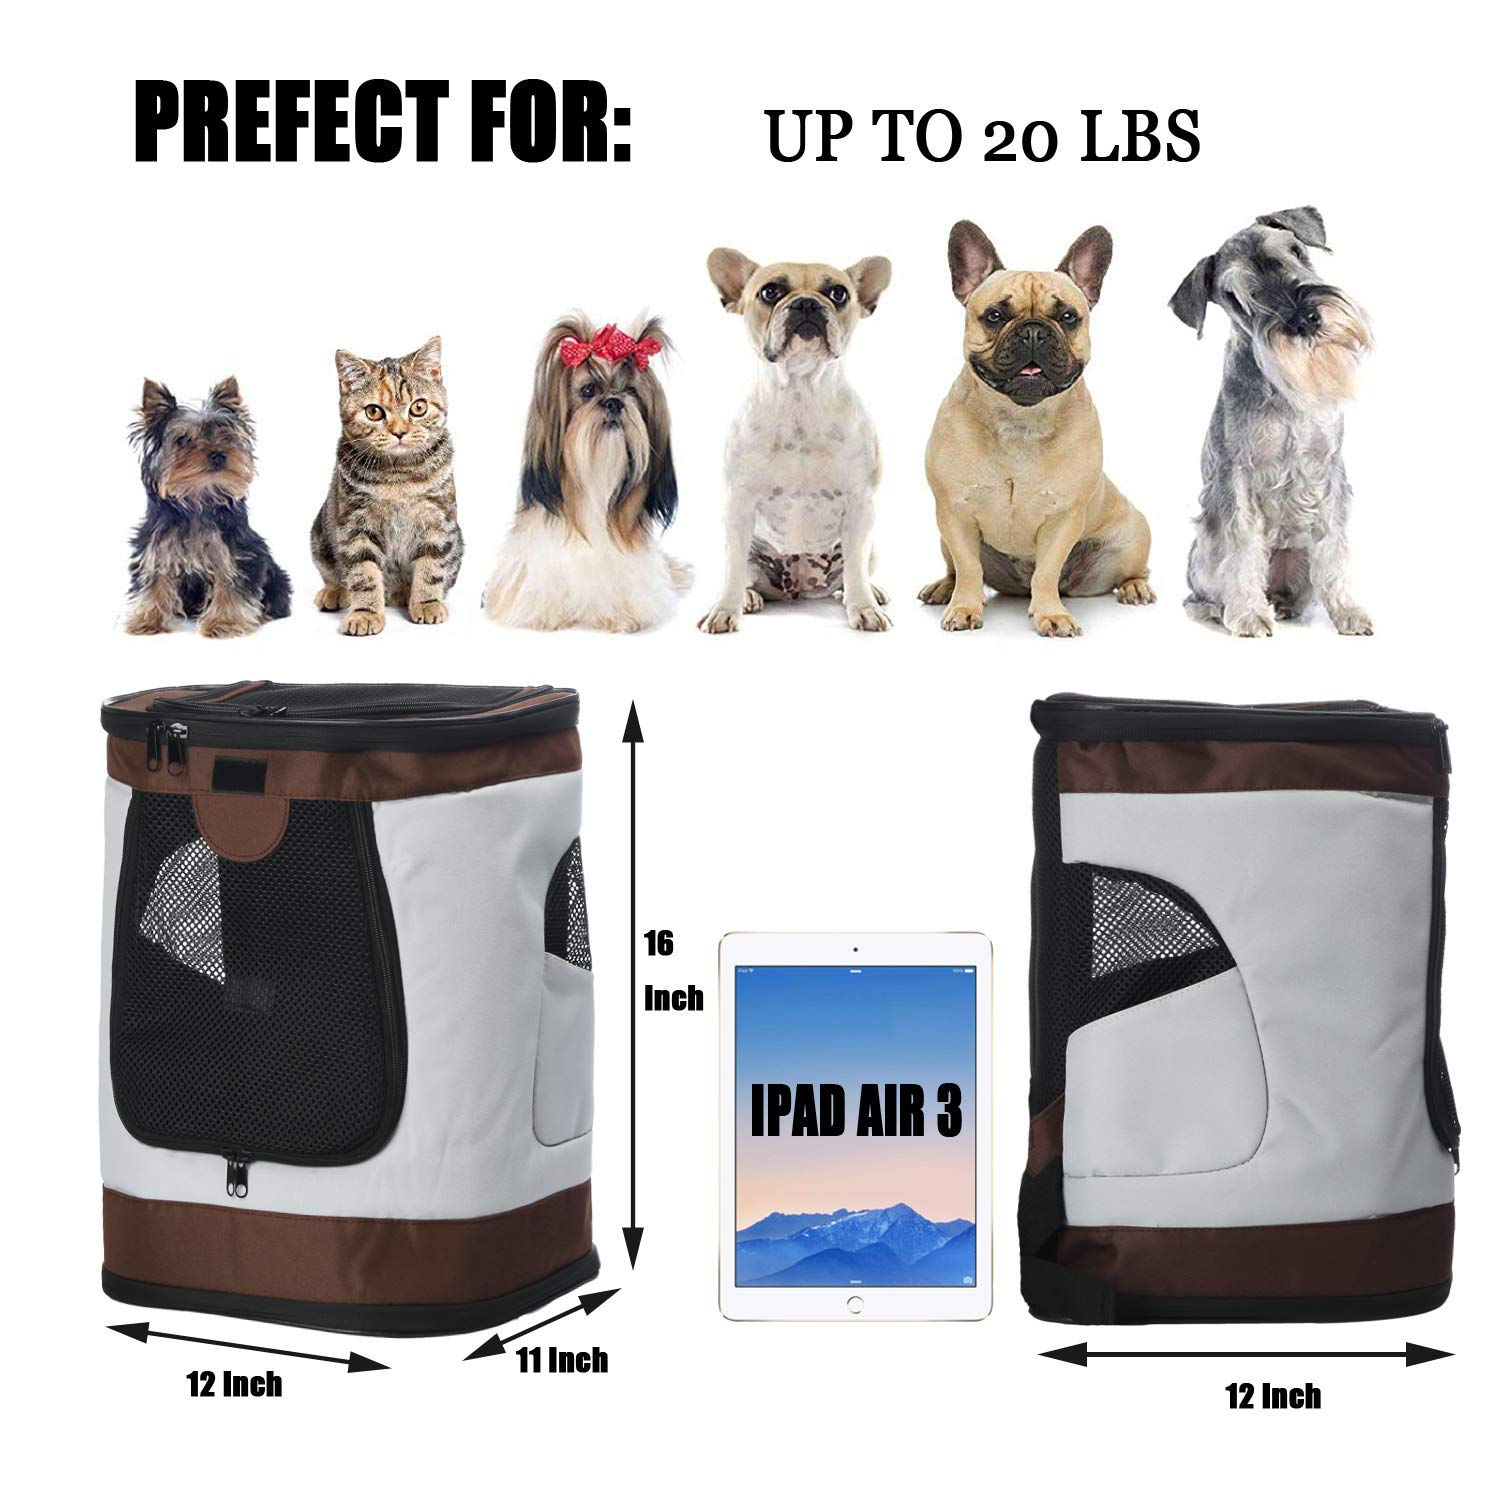 Airline Approved Bag with Mesh Windows for Travel Outdoor up to 20LBS Pet Carrier Backpack for Small Medium Dogs Cats Hiking